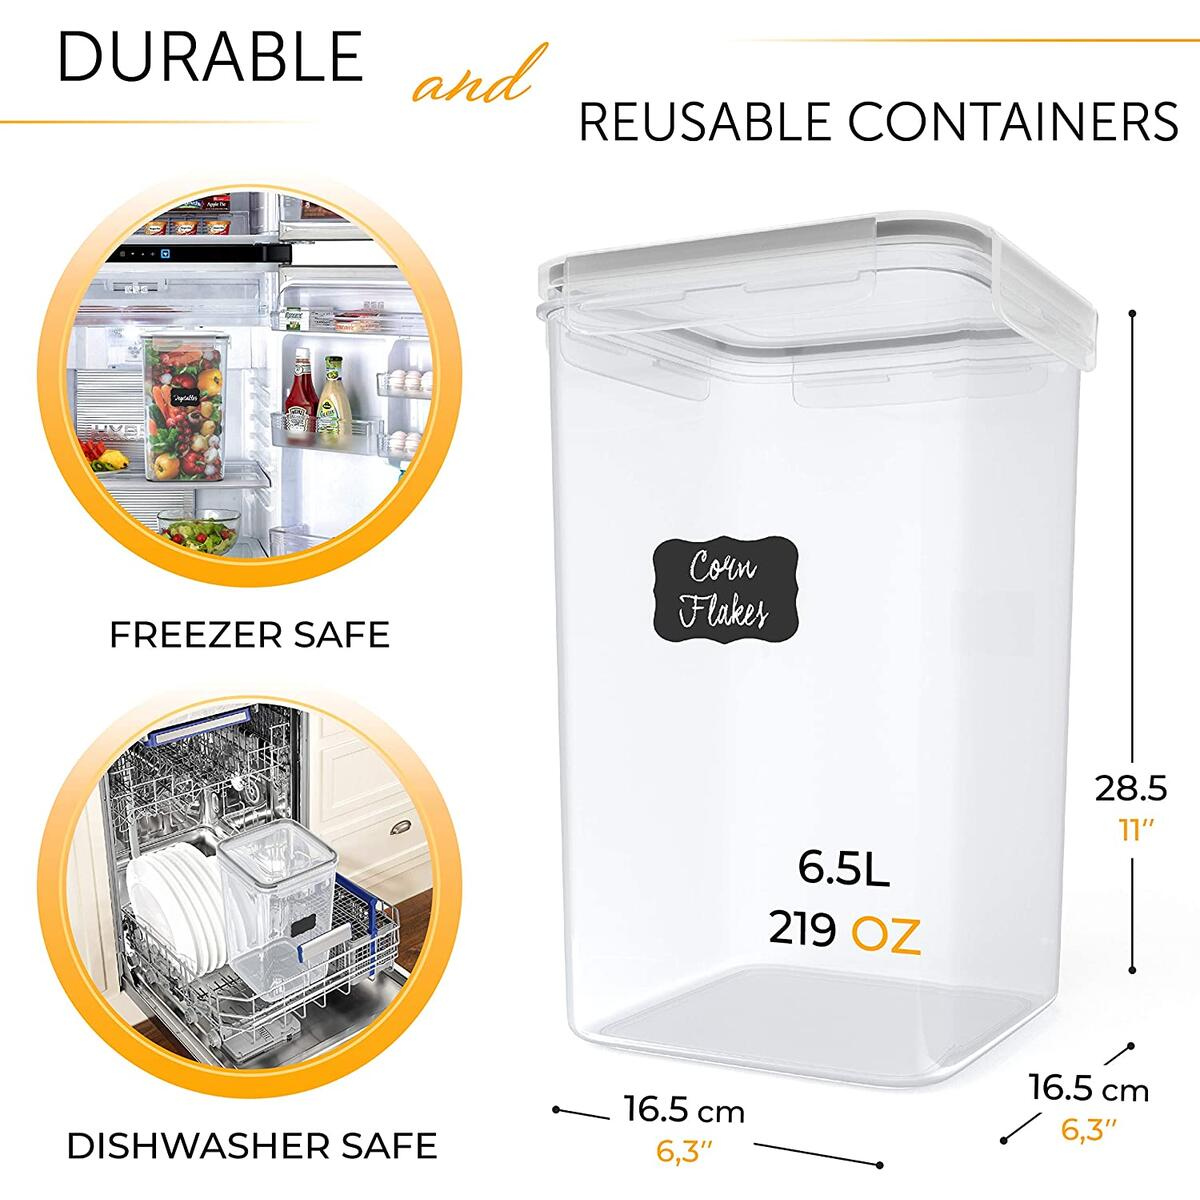 Large Airtight Food Storage Containers with Lids - 2 x 6.5L (220 Oz) Sugar Rice Cereal Flour Container for Kitchen Organizing - BPA-Free Dry Food Storage Containers for Pantry